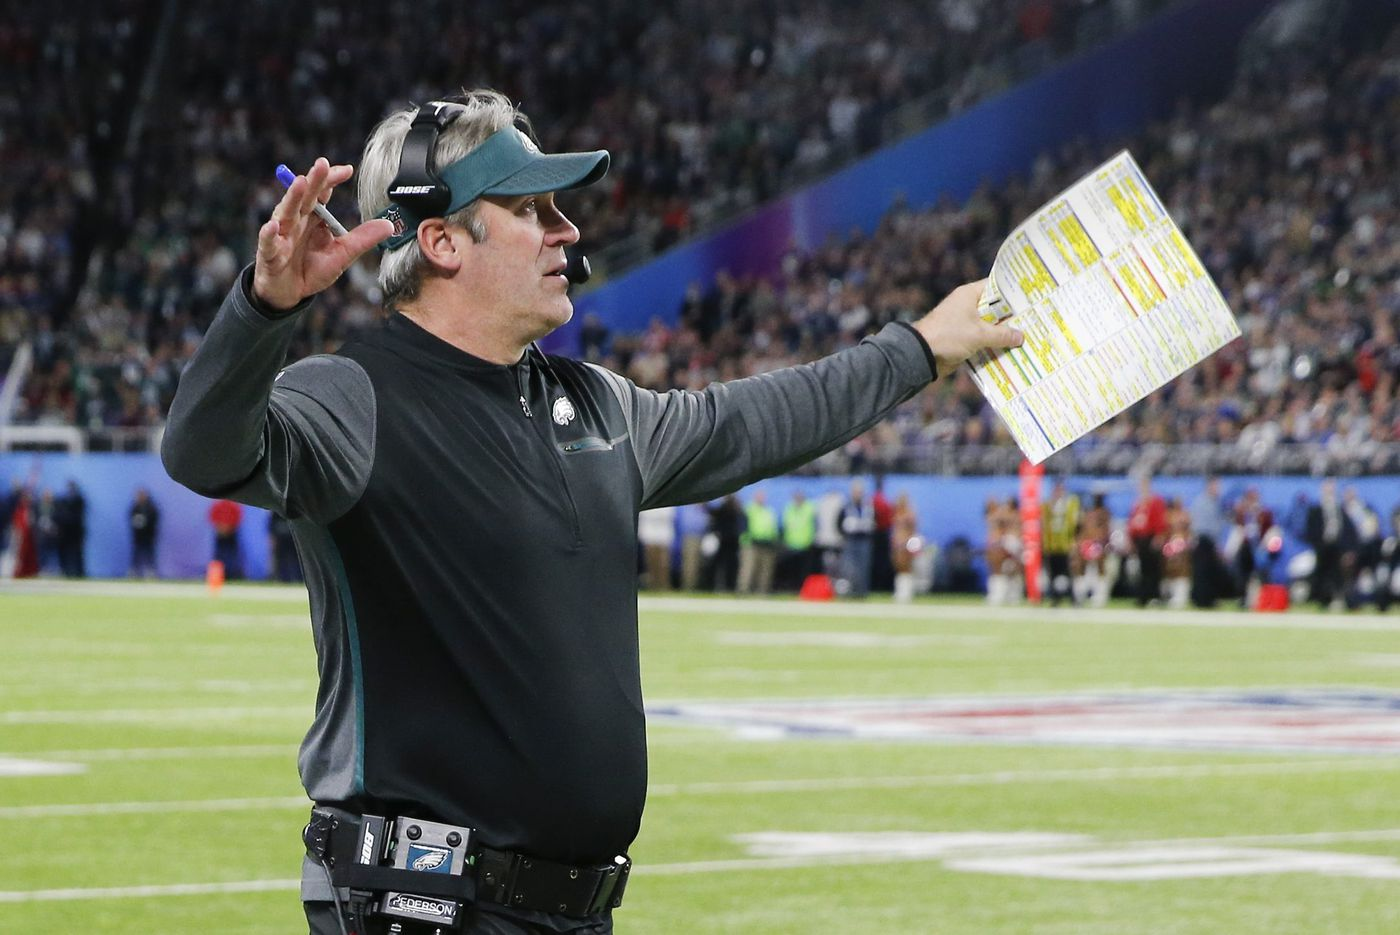 Doug Pederson's life changed after the Super Bowl, but he feels he hasn't: 'I know what it took for me to get here'